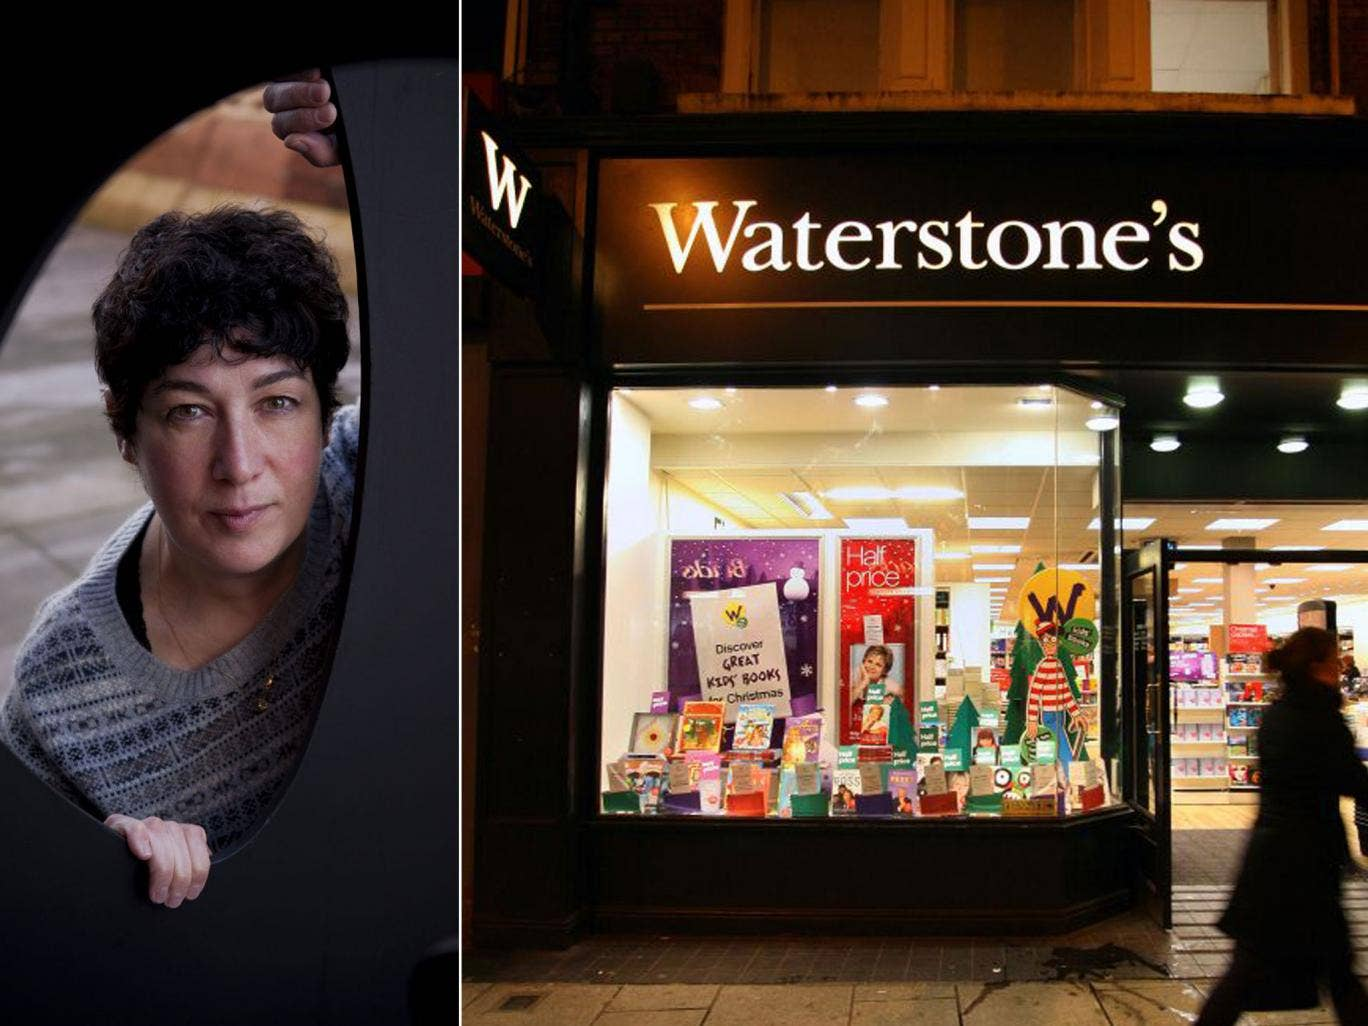 A Waterstone's store and Joanne Harris